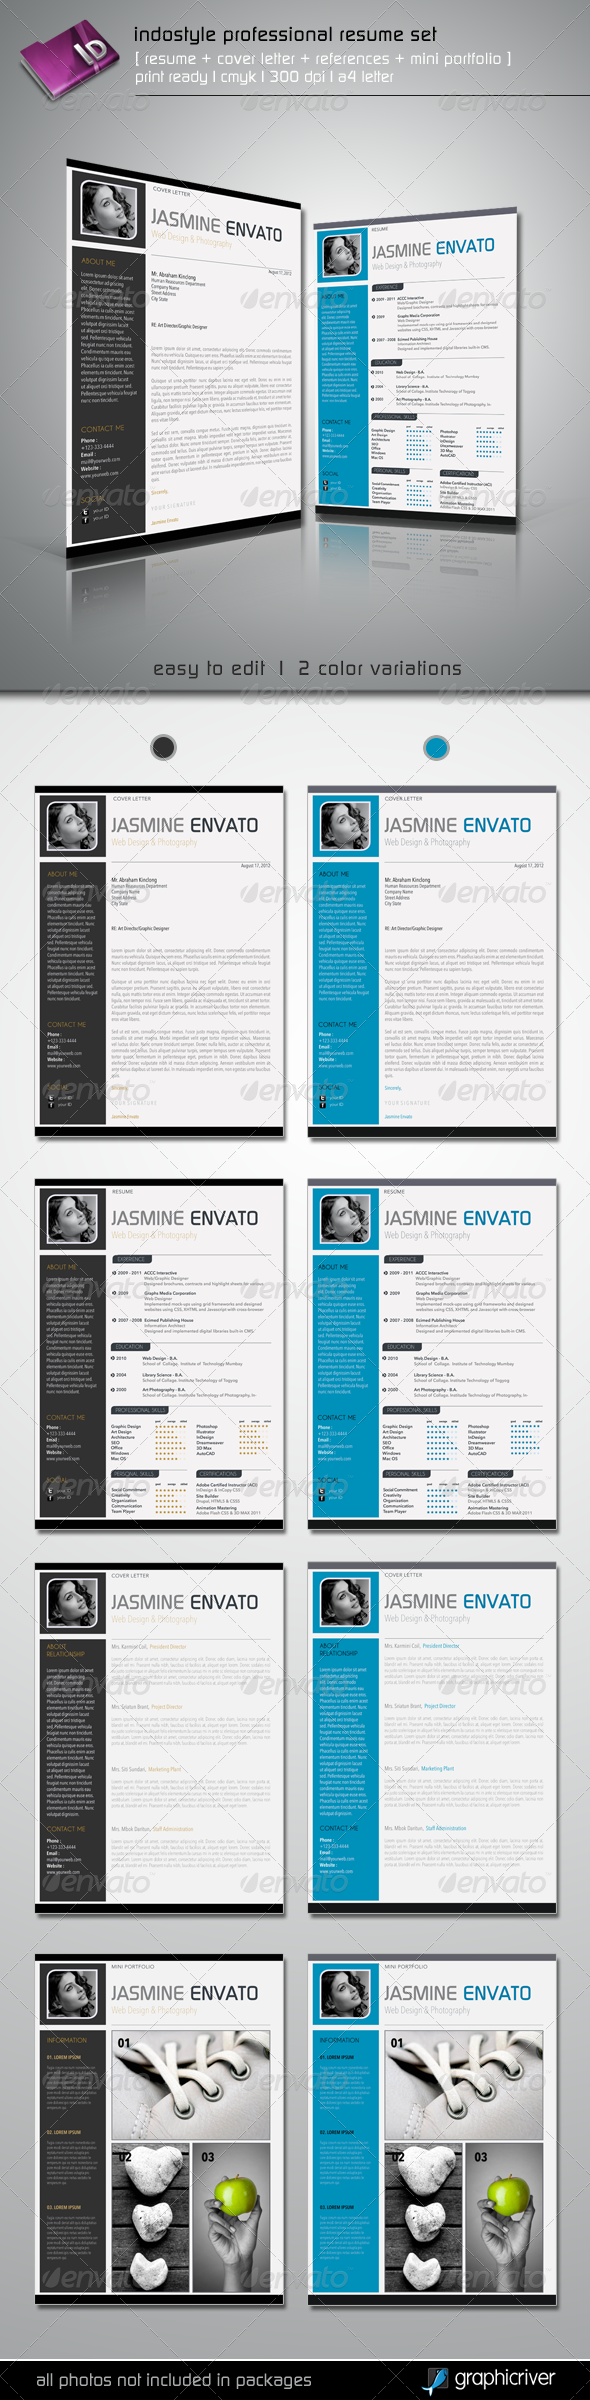 Indostyle Professional Resume Set - Resumes Stationery